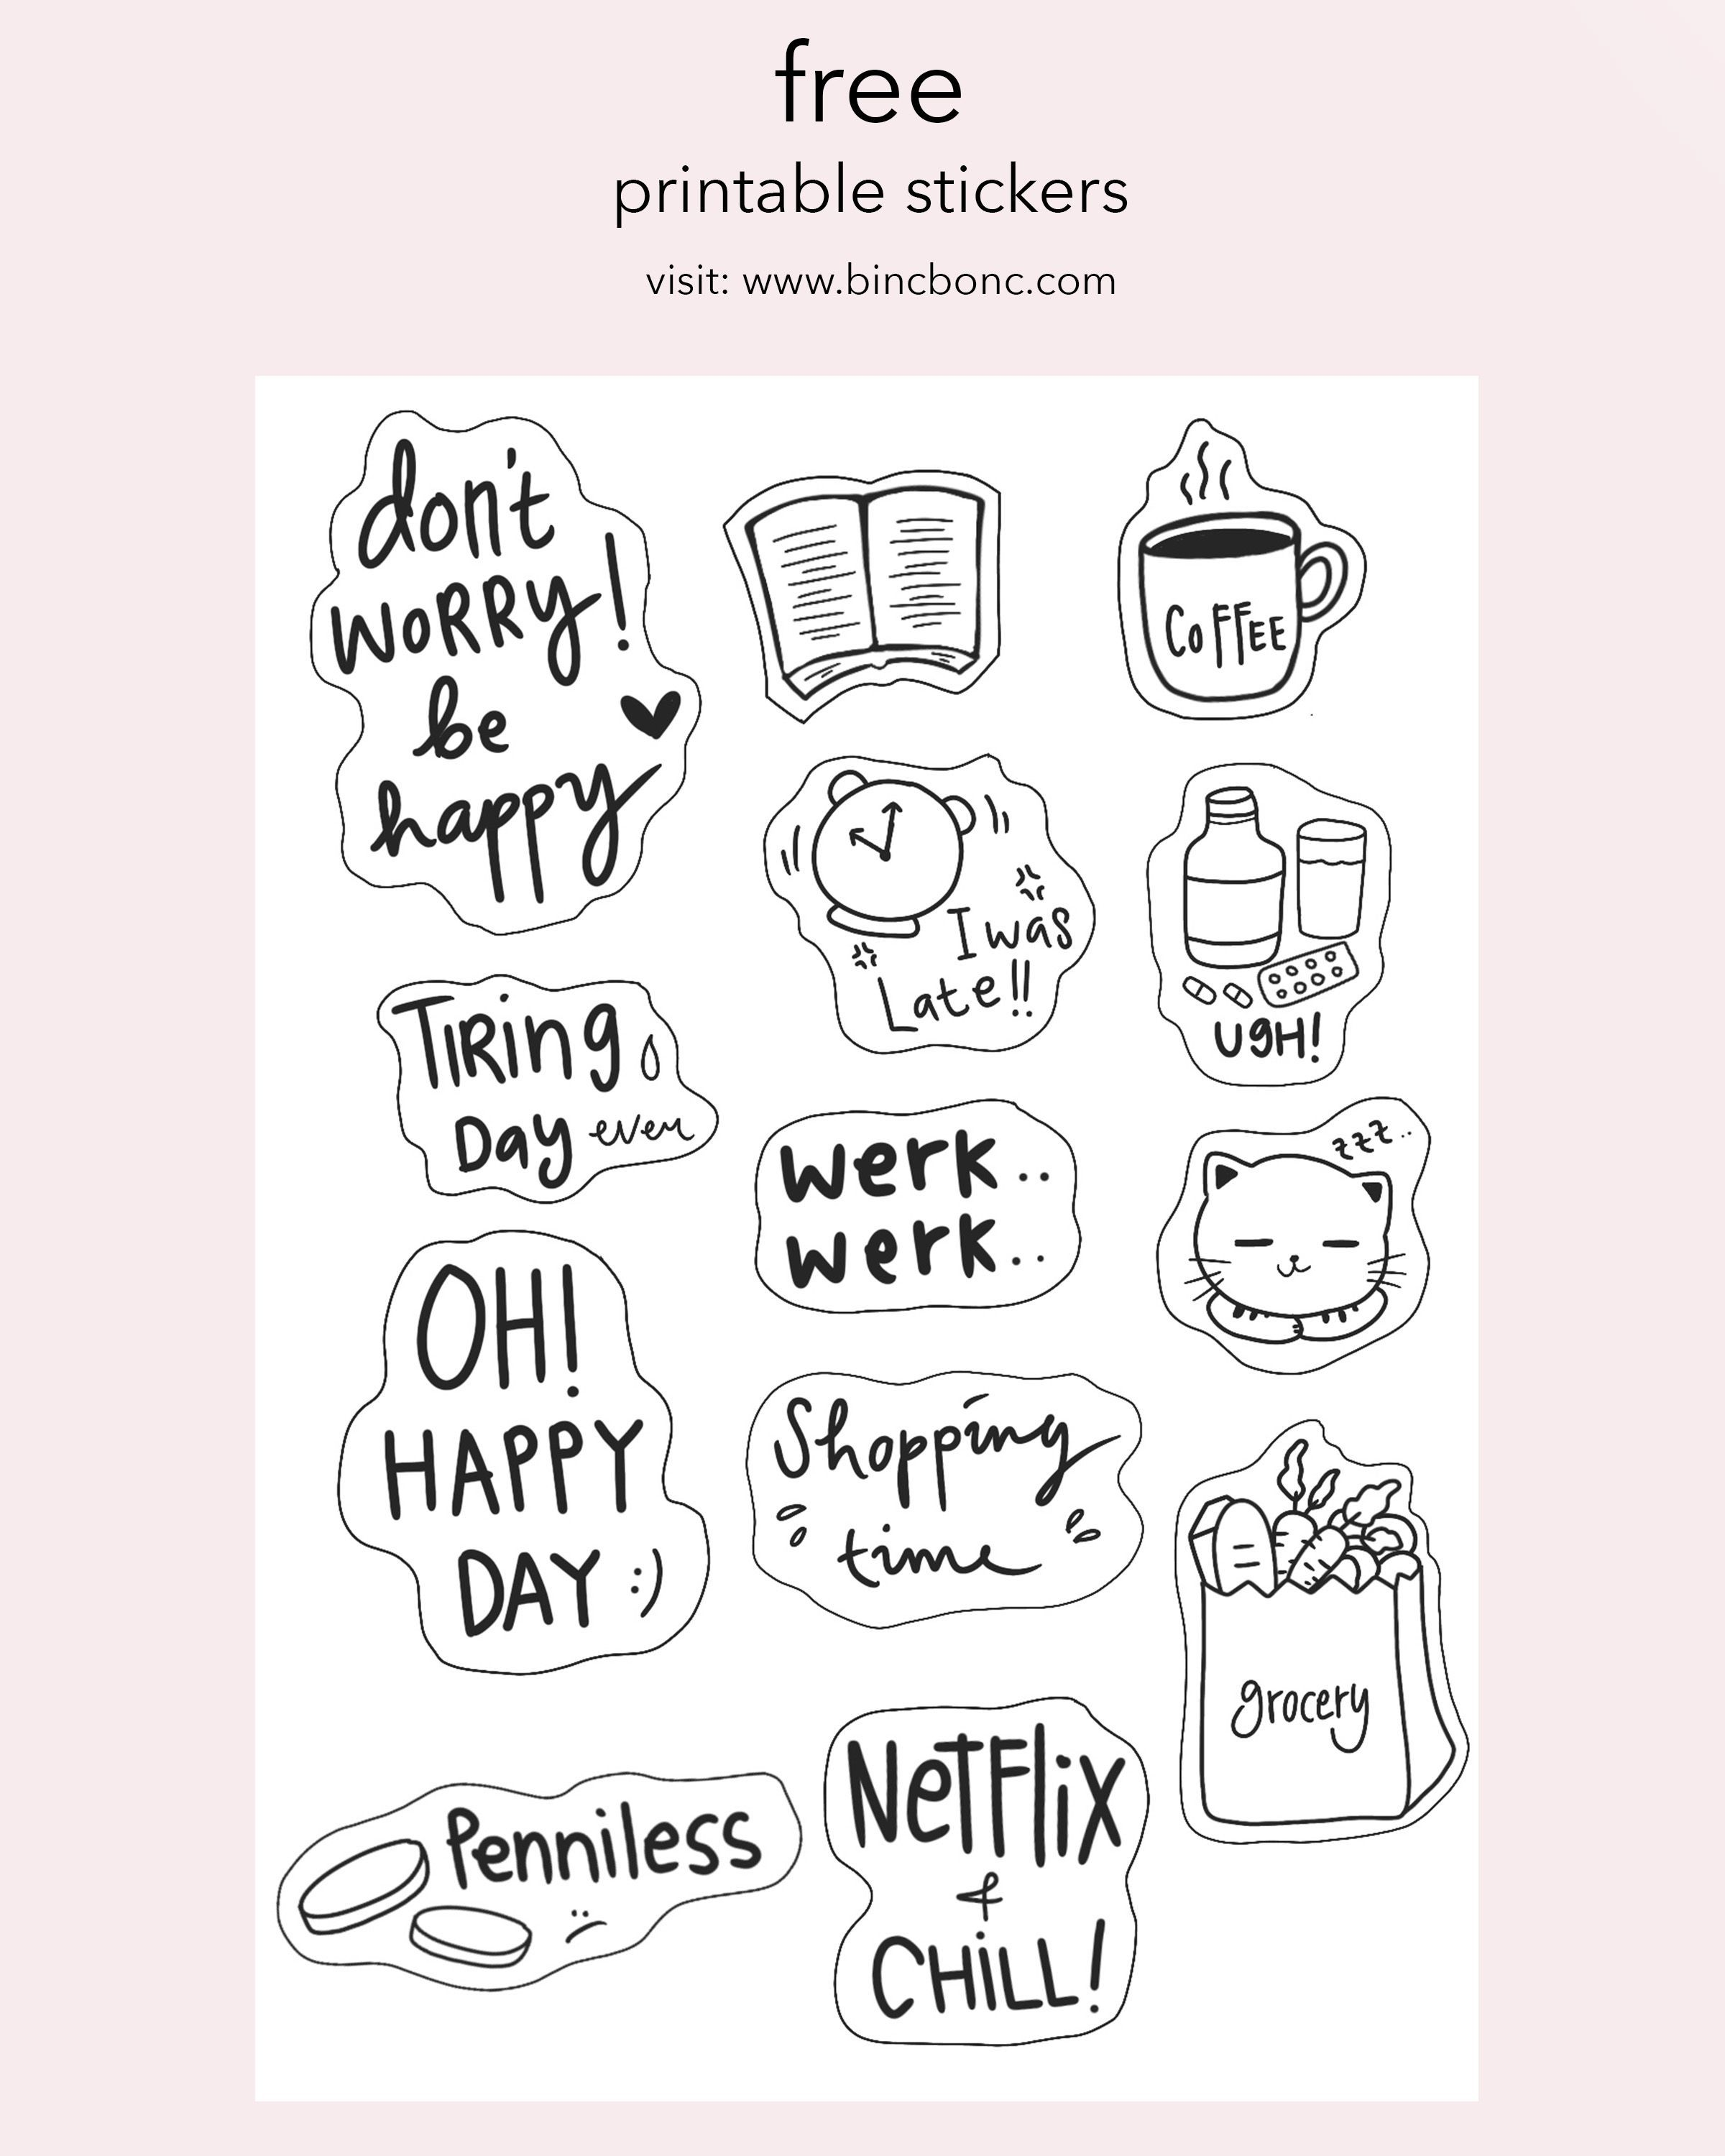 Good Pictures Printable Stickers Free Thoughts On The List Of Many Benefits On The W In 2021 Scrapbook Stickers Printable Black And White Stickers Printable Stickers